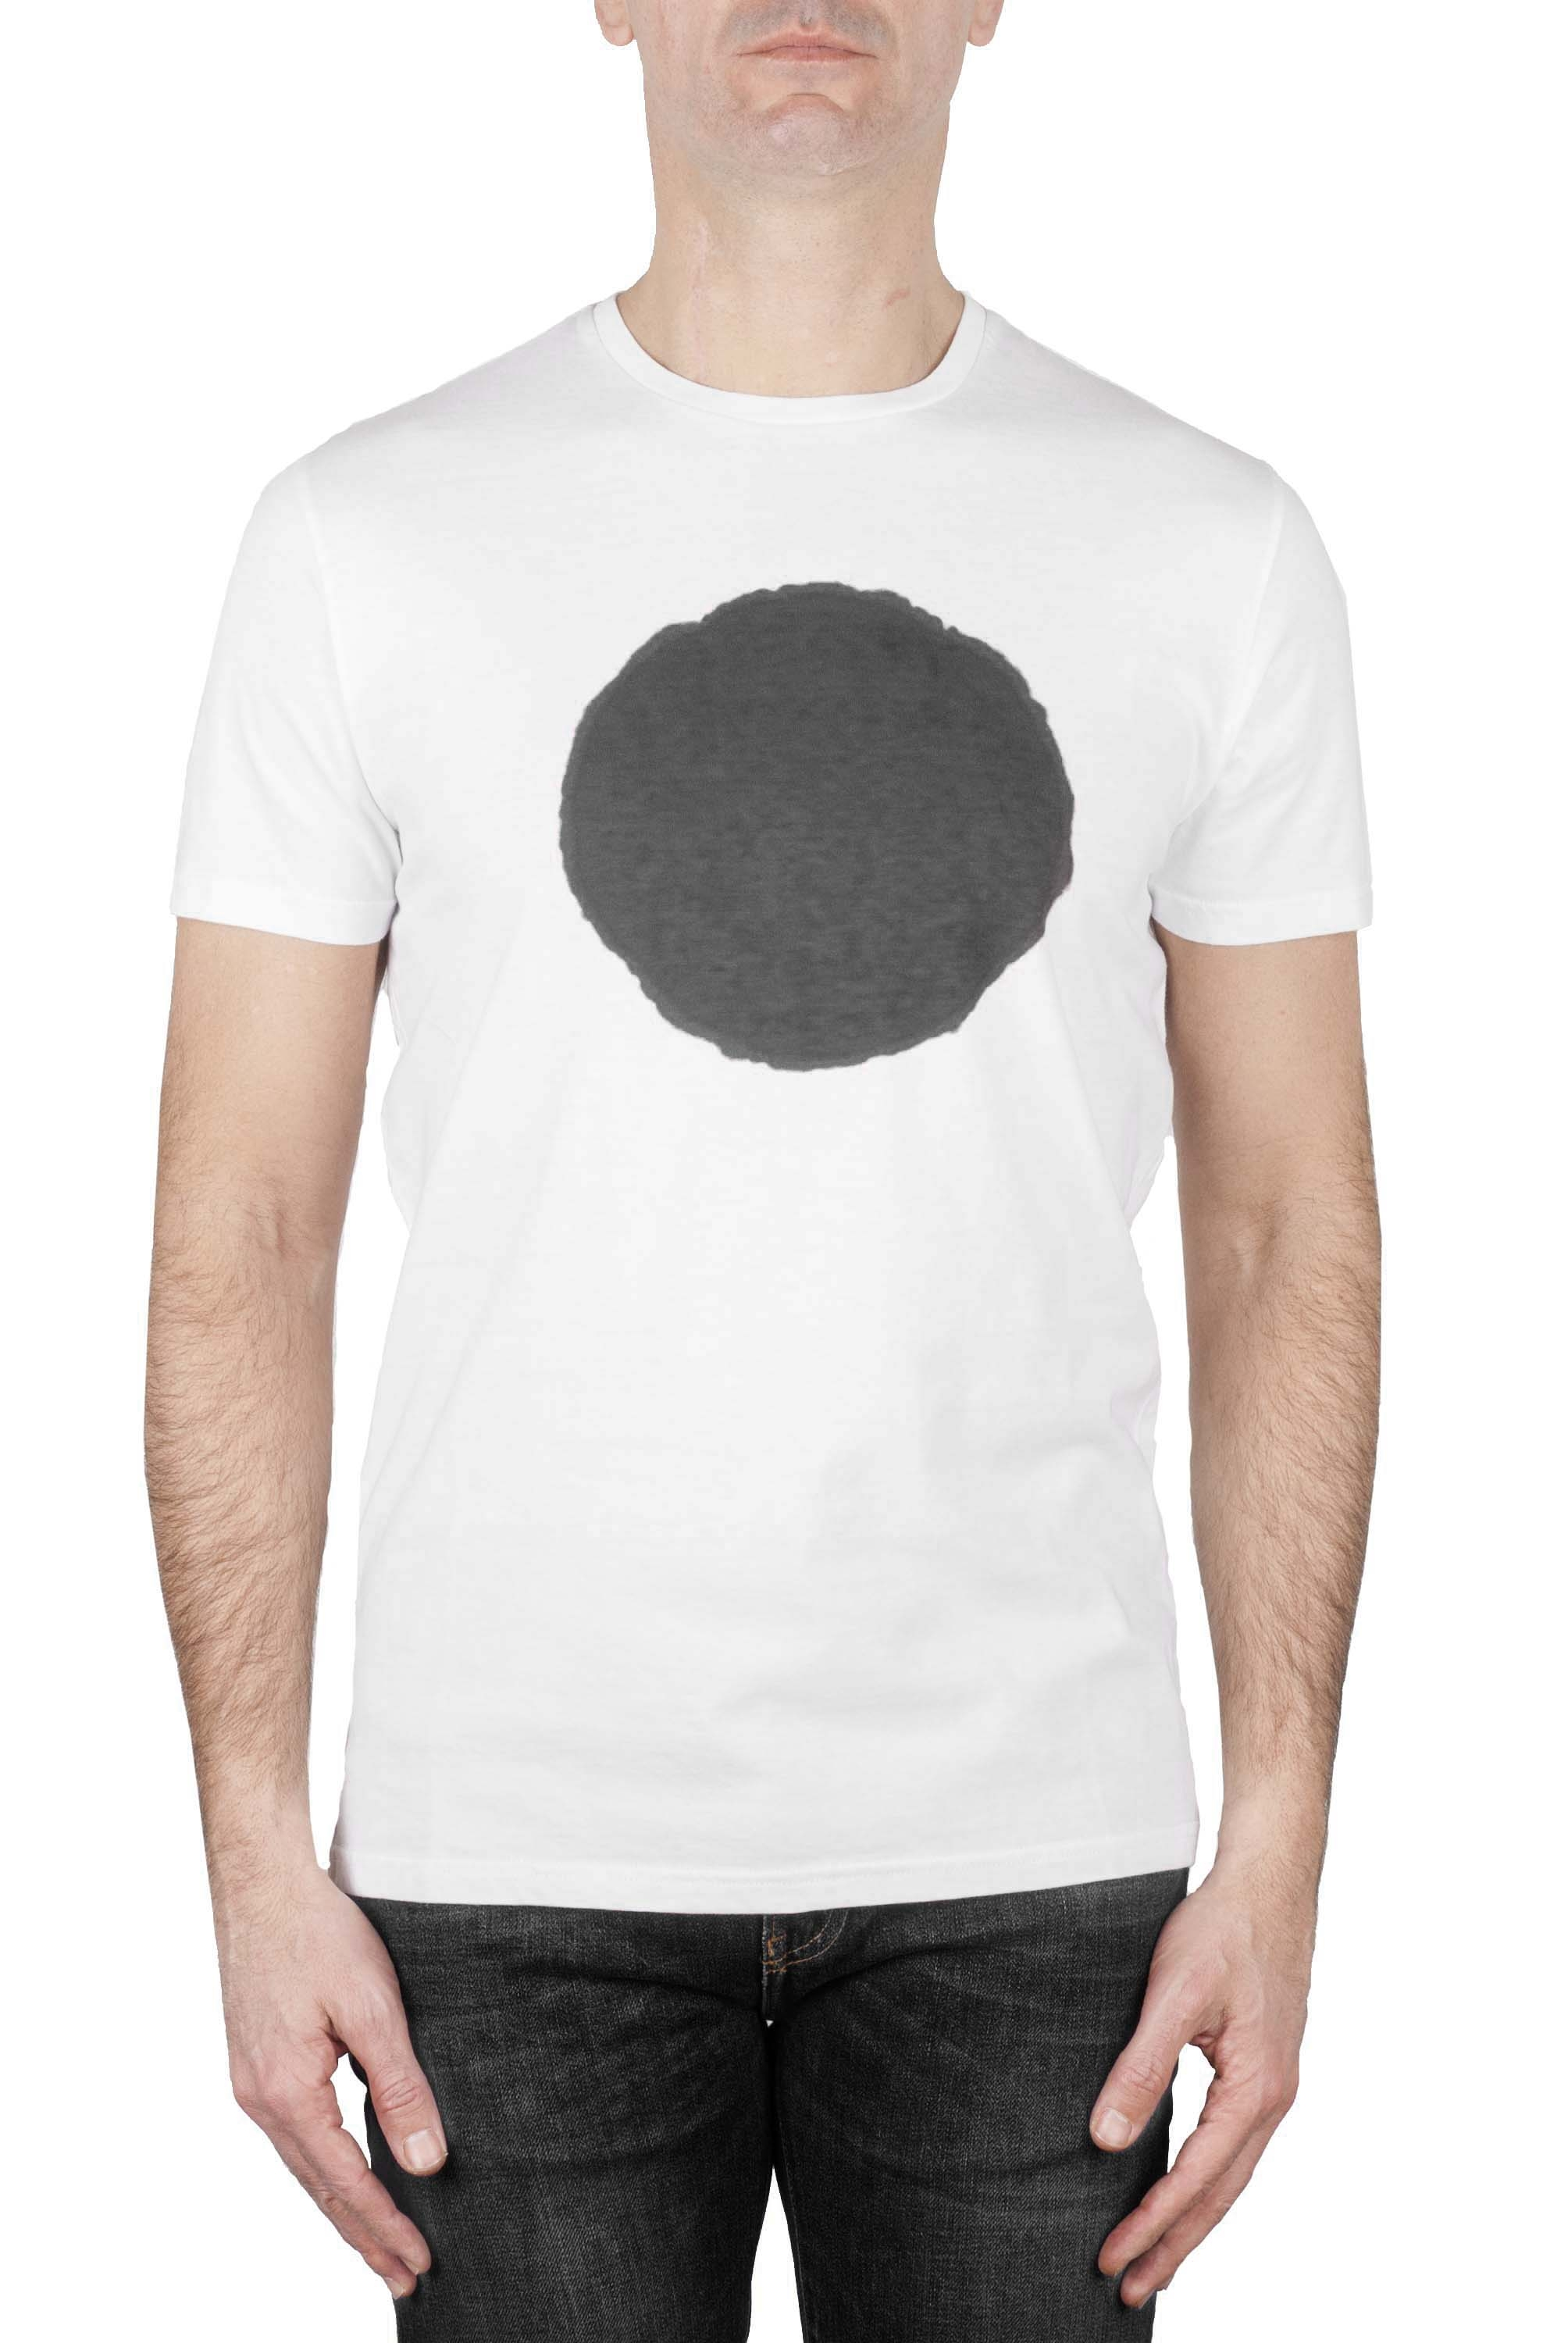 SBU 01168_19AW Classic short sleeve cotton round neck t-shirt grey and white printed graphic 01